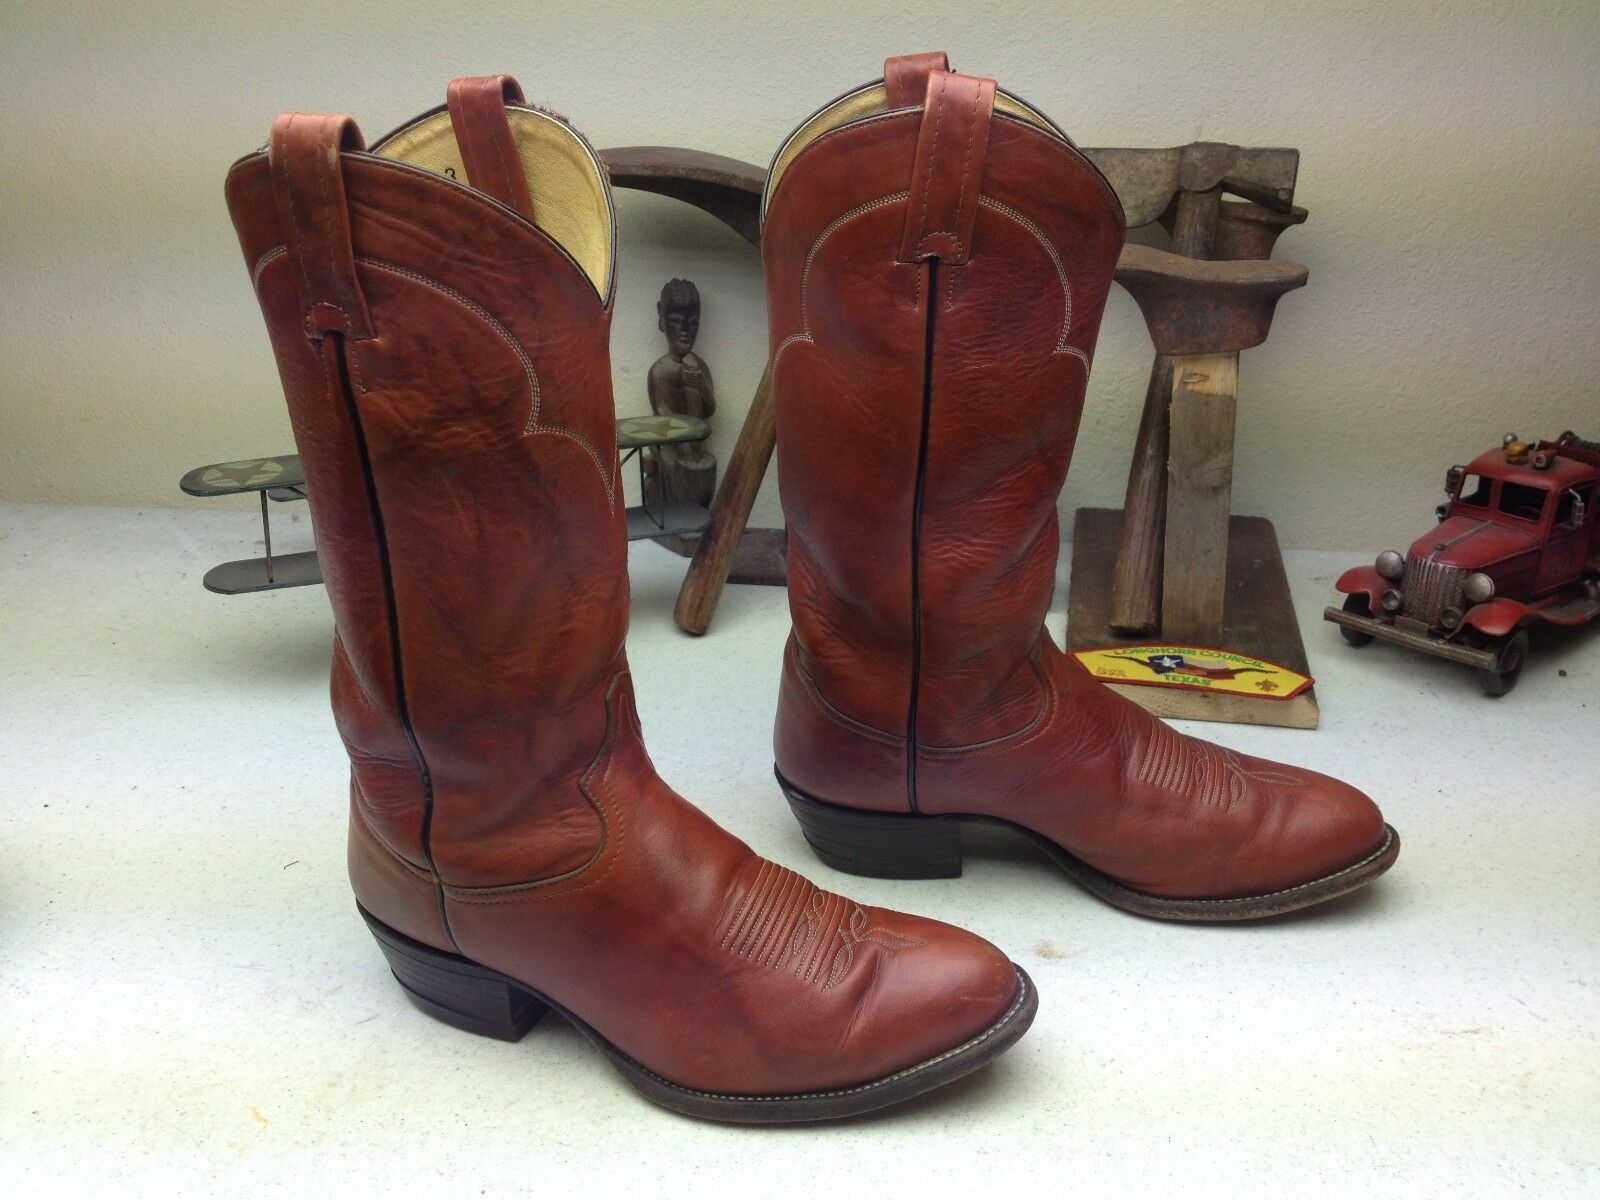 VINTAGE USA TONY LAMA braun braun braun LEATHER WESTERN ENGINEER TRAIL BOSS Stiefel Größe 8.5EE ac2095